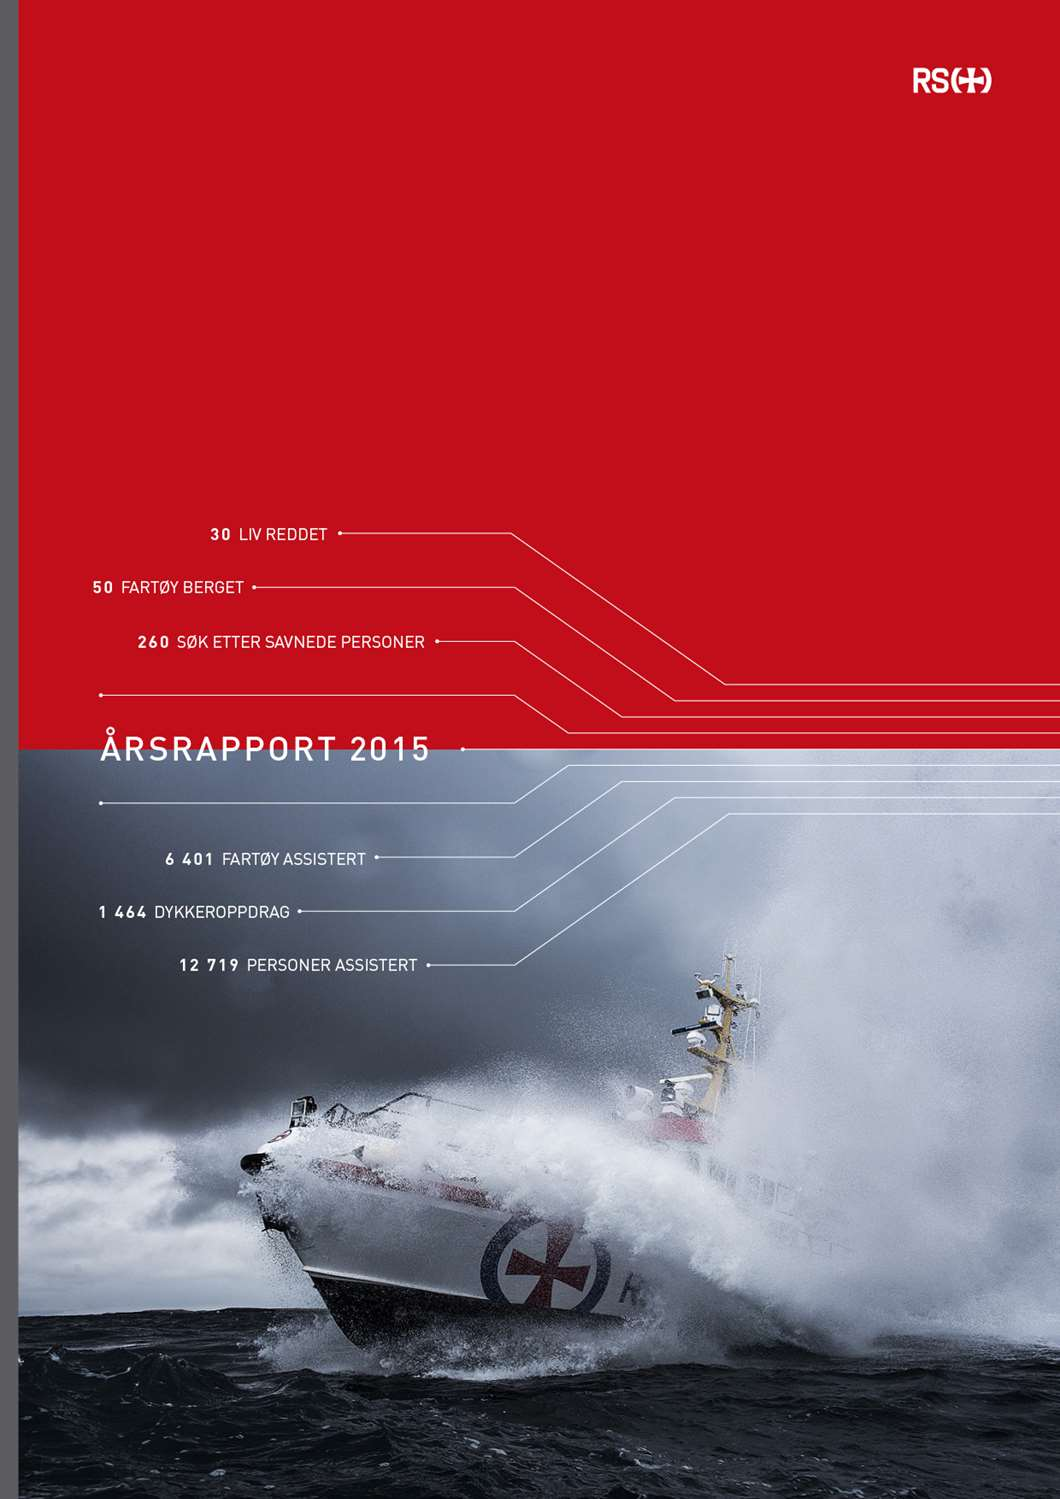 RS_aarsrapport2015